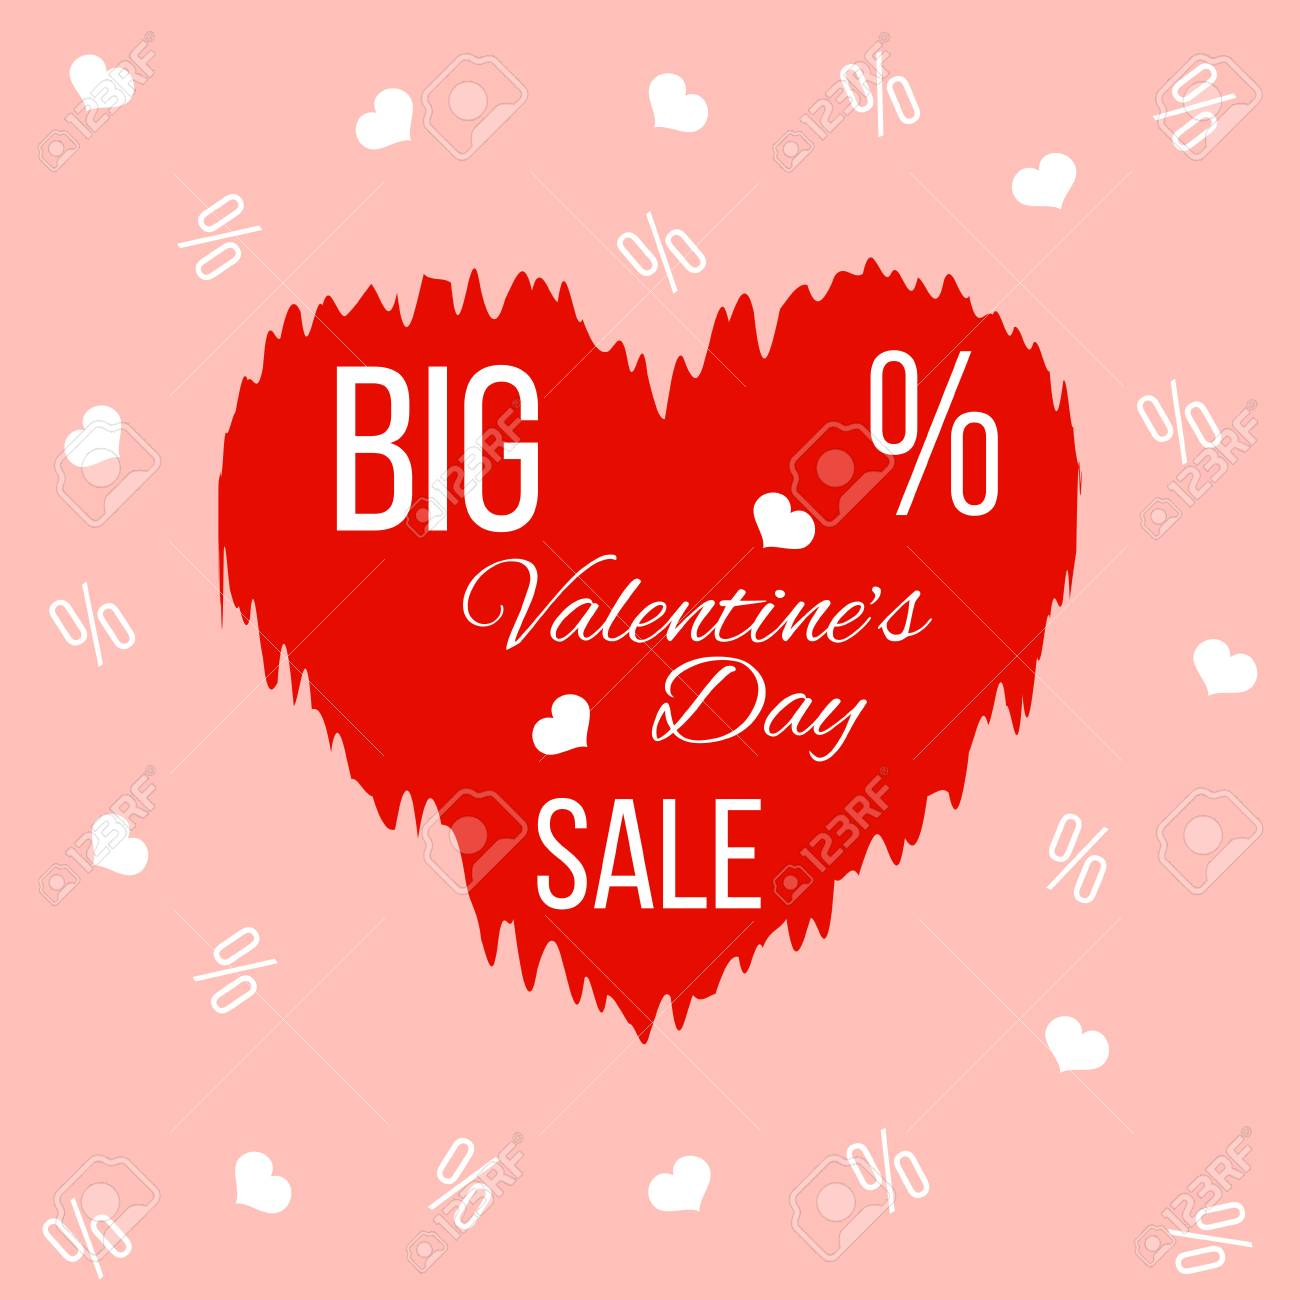 Big Valentines Day Sale Banner With Red Wrinkled Heart Royalty Free